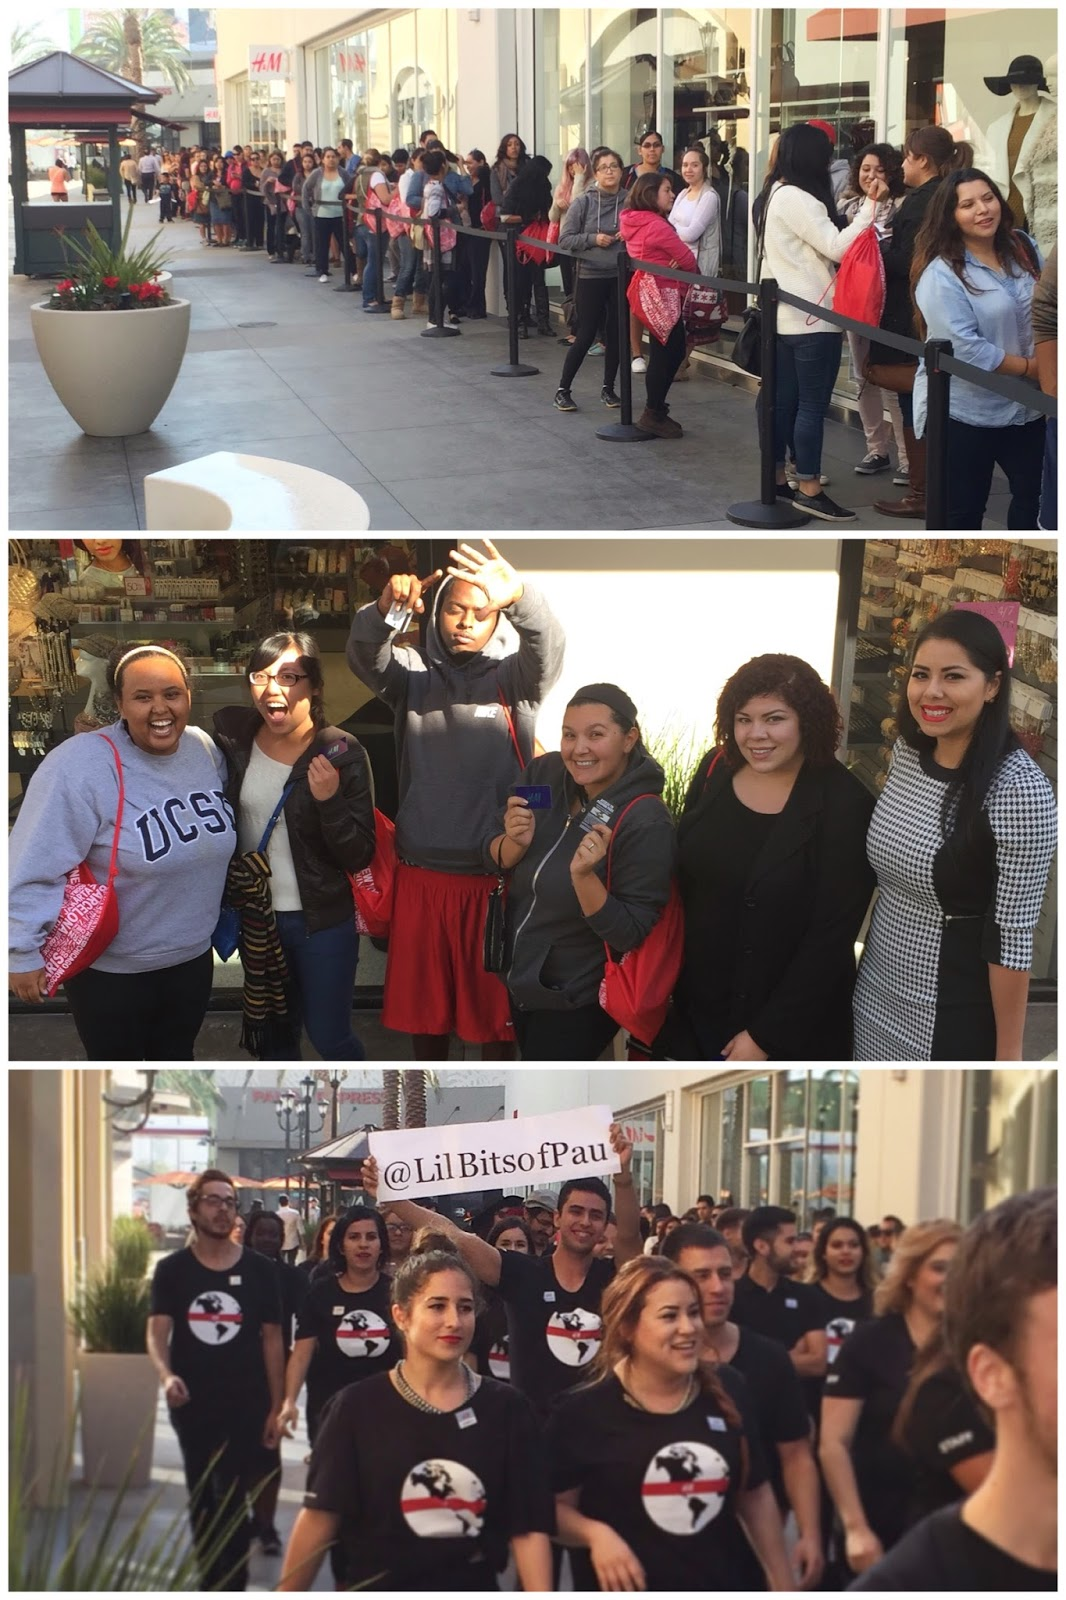 San Ysidro Outlets: H&M Grand Opening, Outlets at the Border H&M